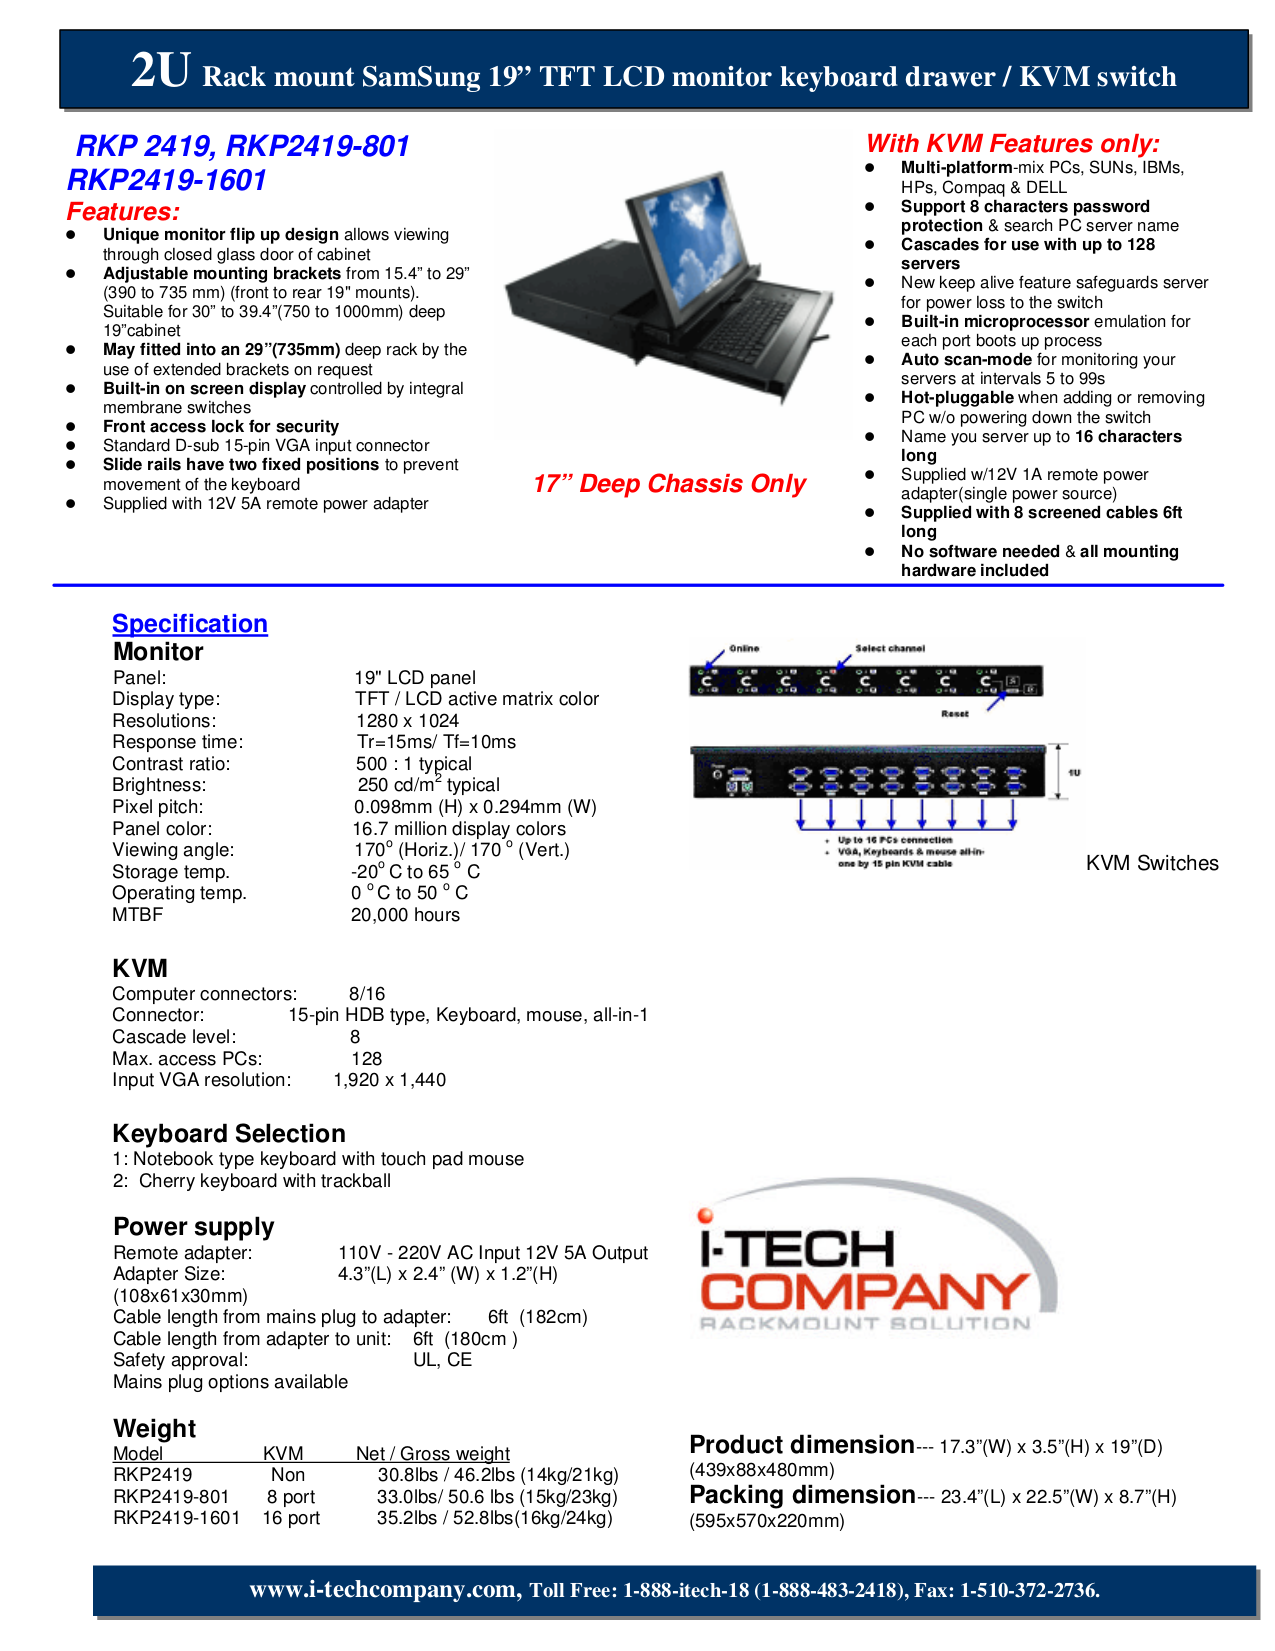 pdf for I-Tech Other RKP2419-801 Keyboard Drawers manual